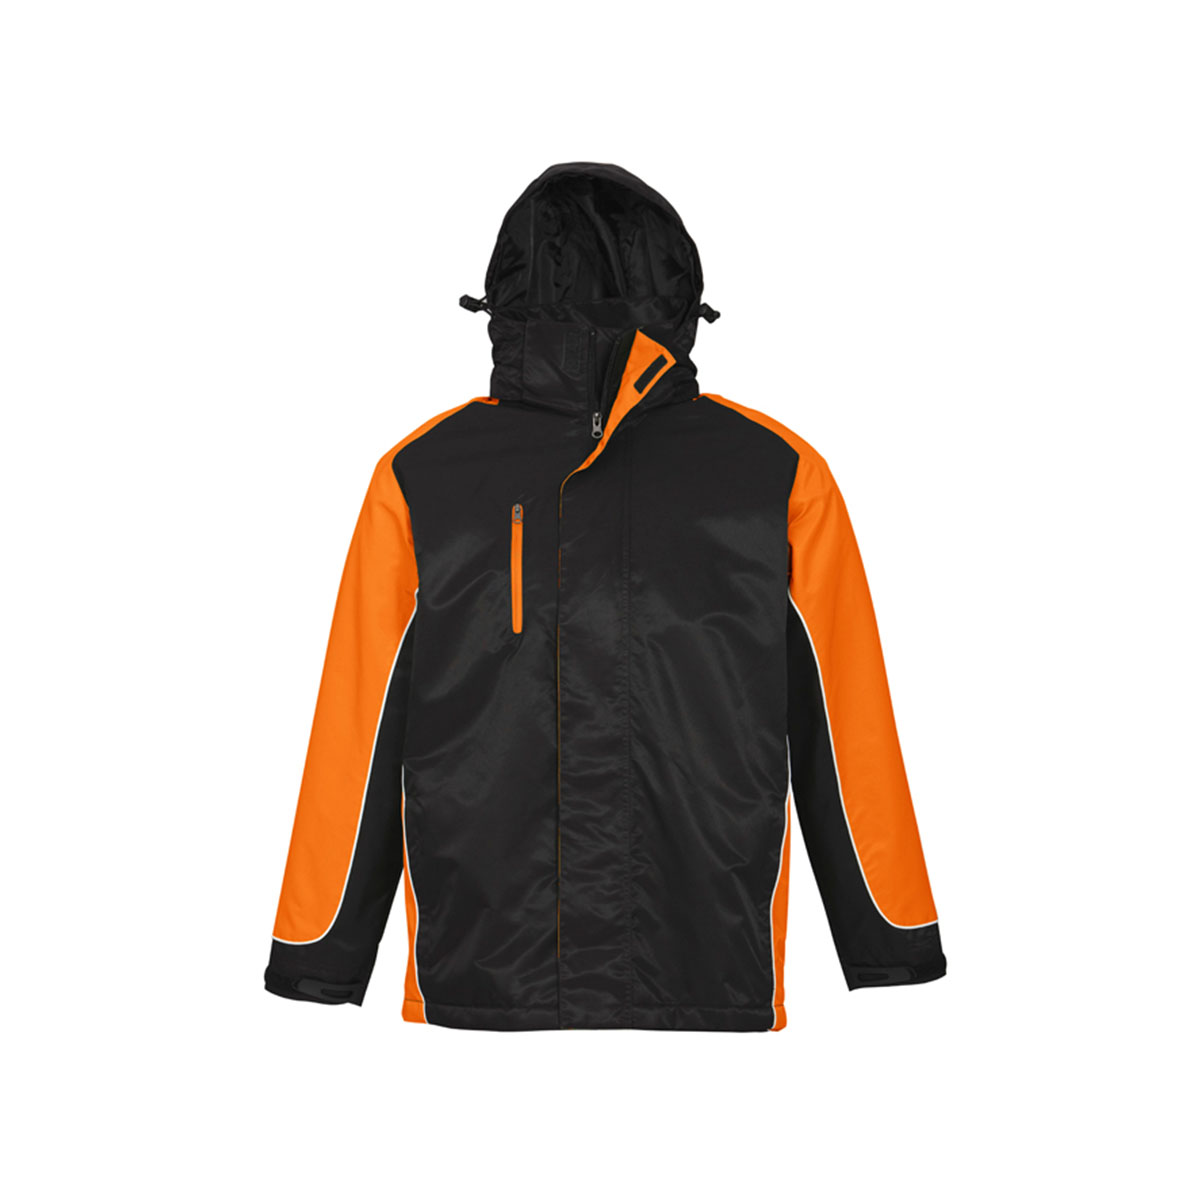 Unisex Nitro Jacket-Black / Orange / White